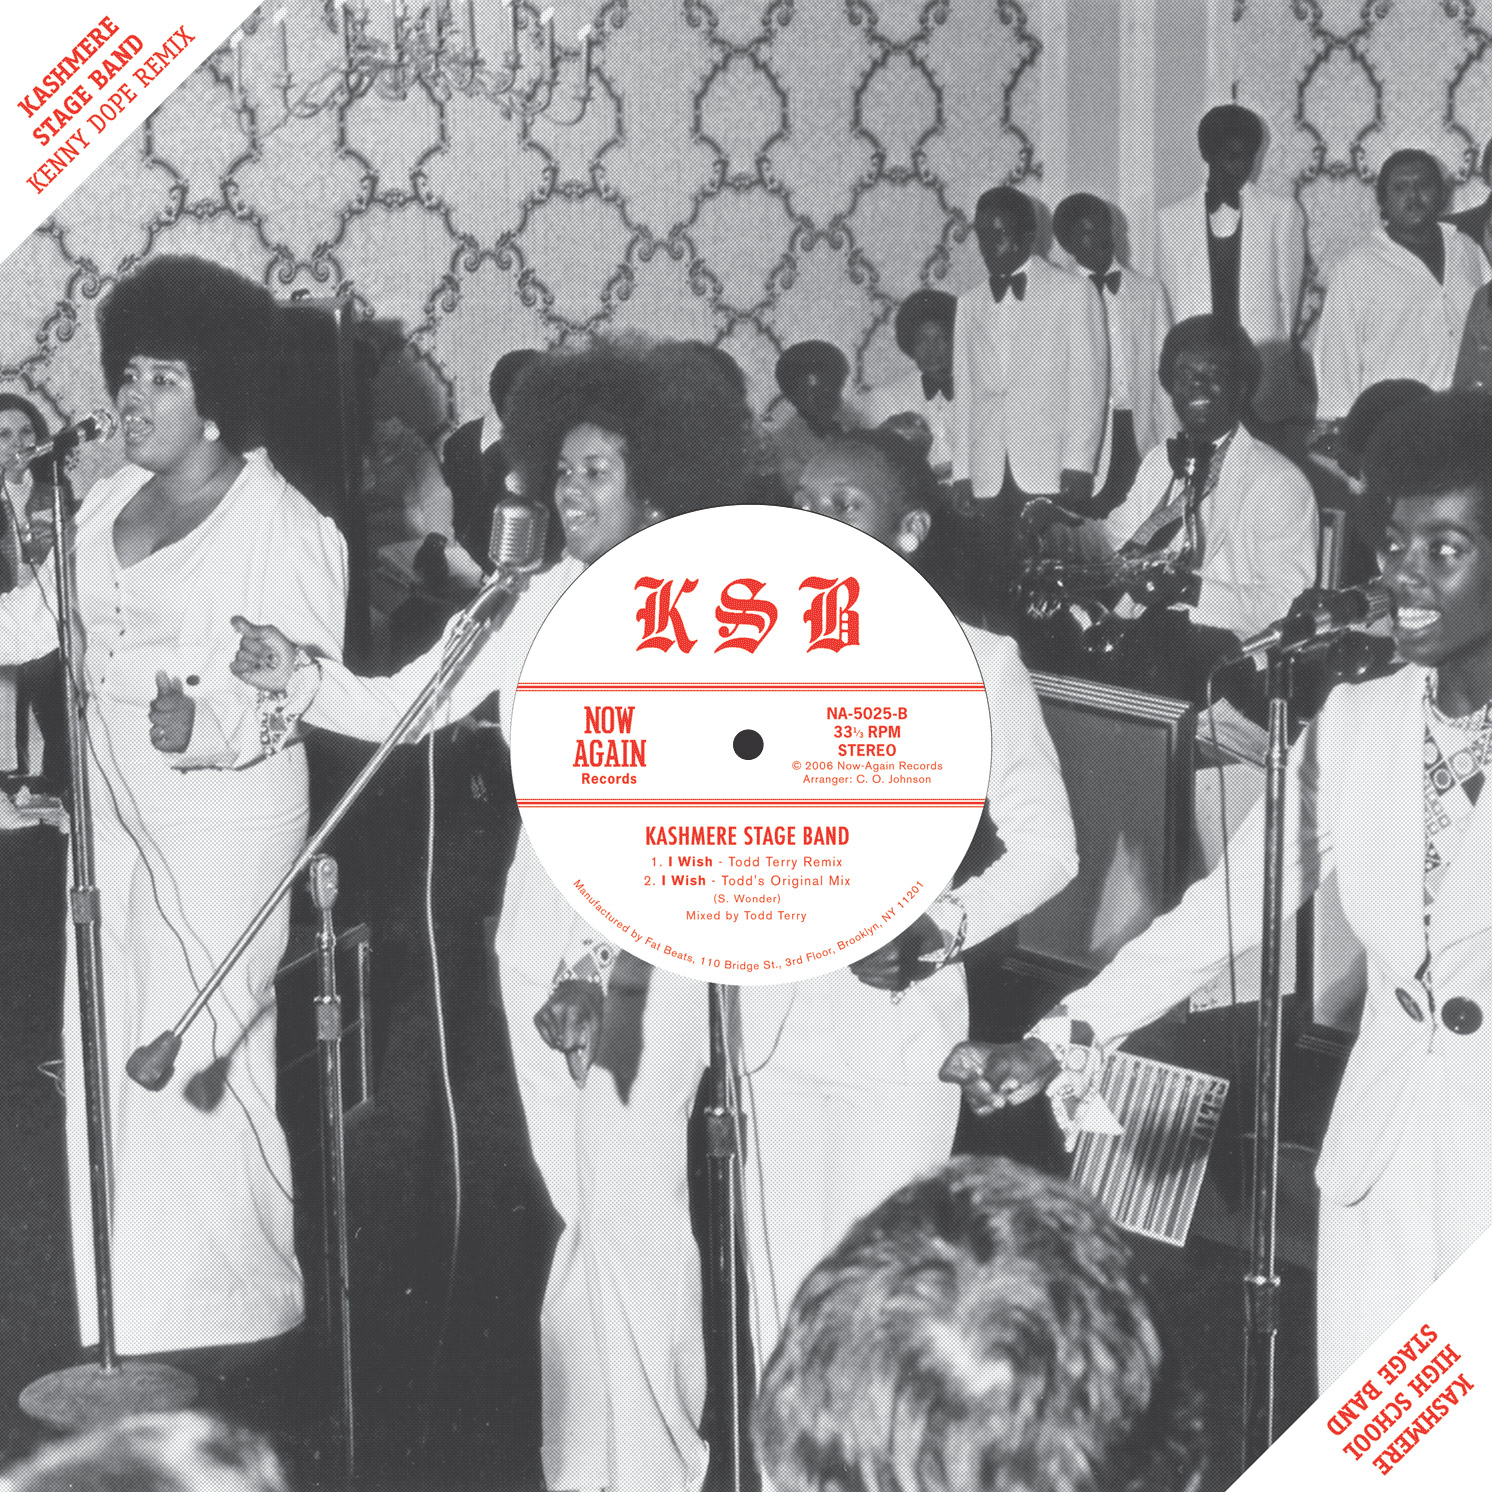 Kashmere Stage Band – Super Strut/I Wish (The Kenny Dope and Todd Terry Remixes)